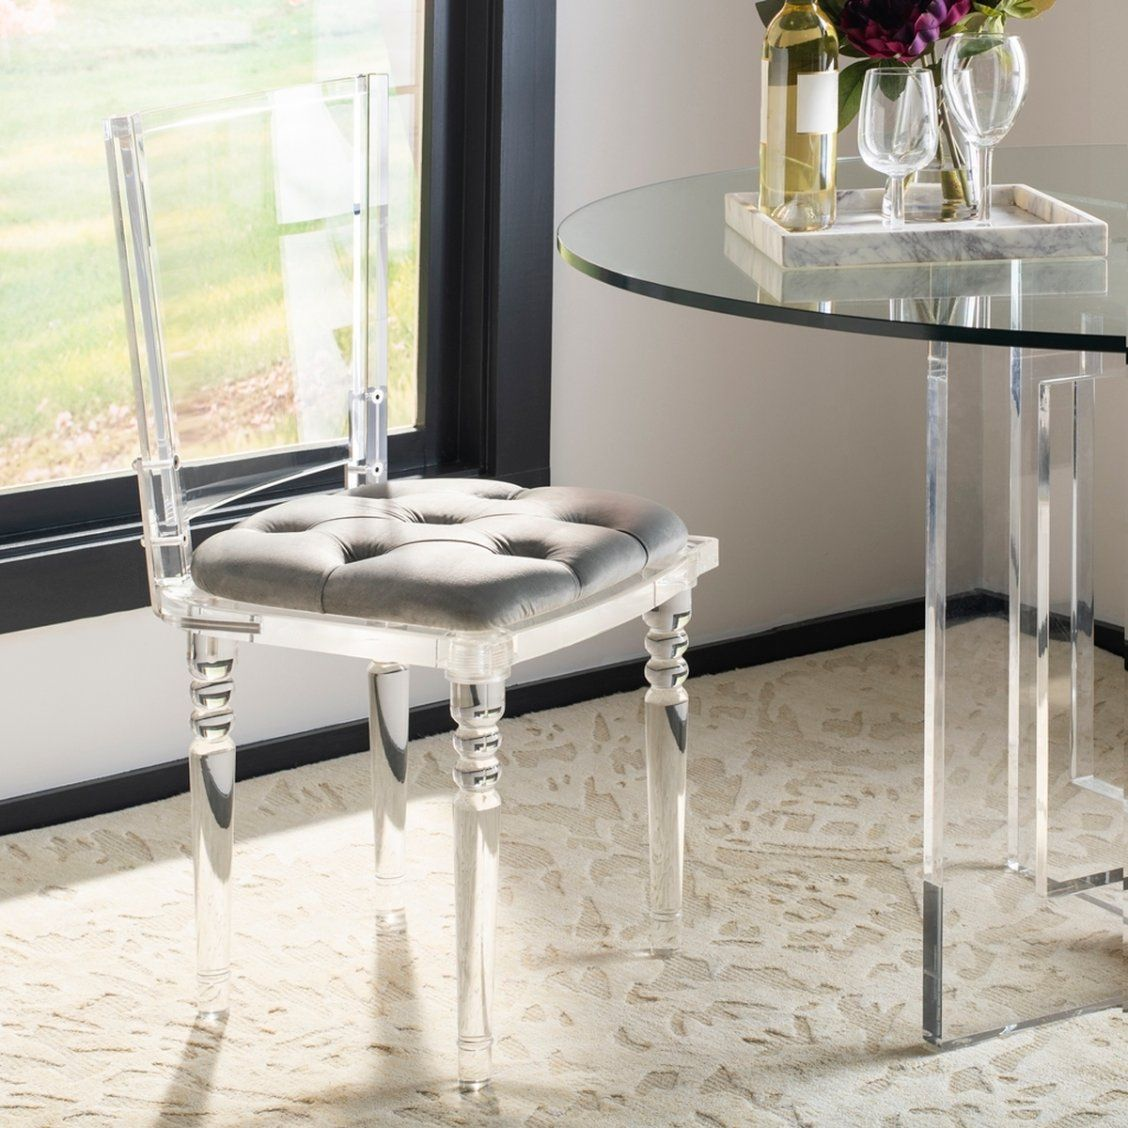 Charming And Chic This Contemporary Acrylic Dining Chair Lends A